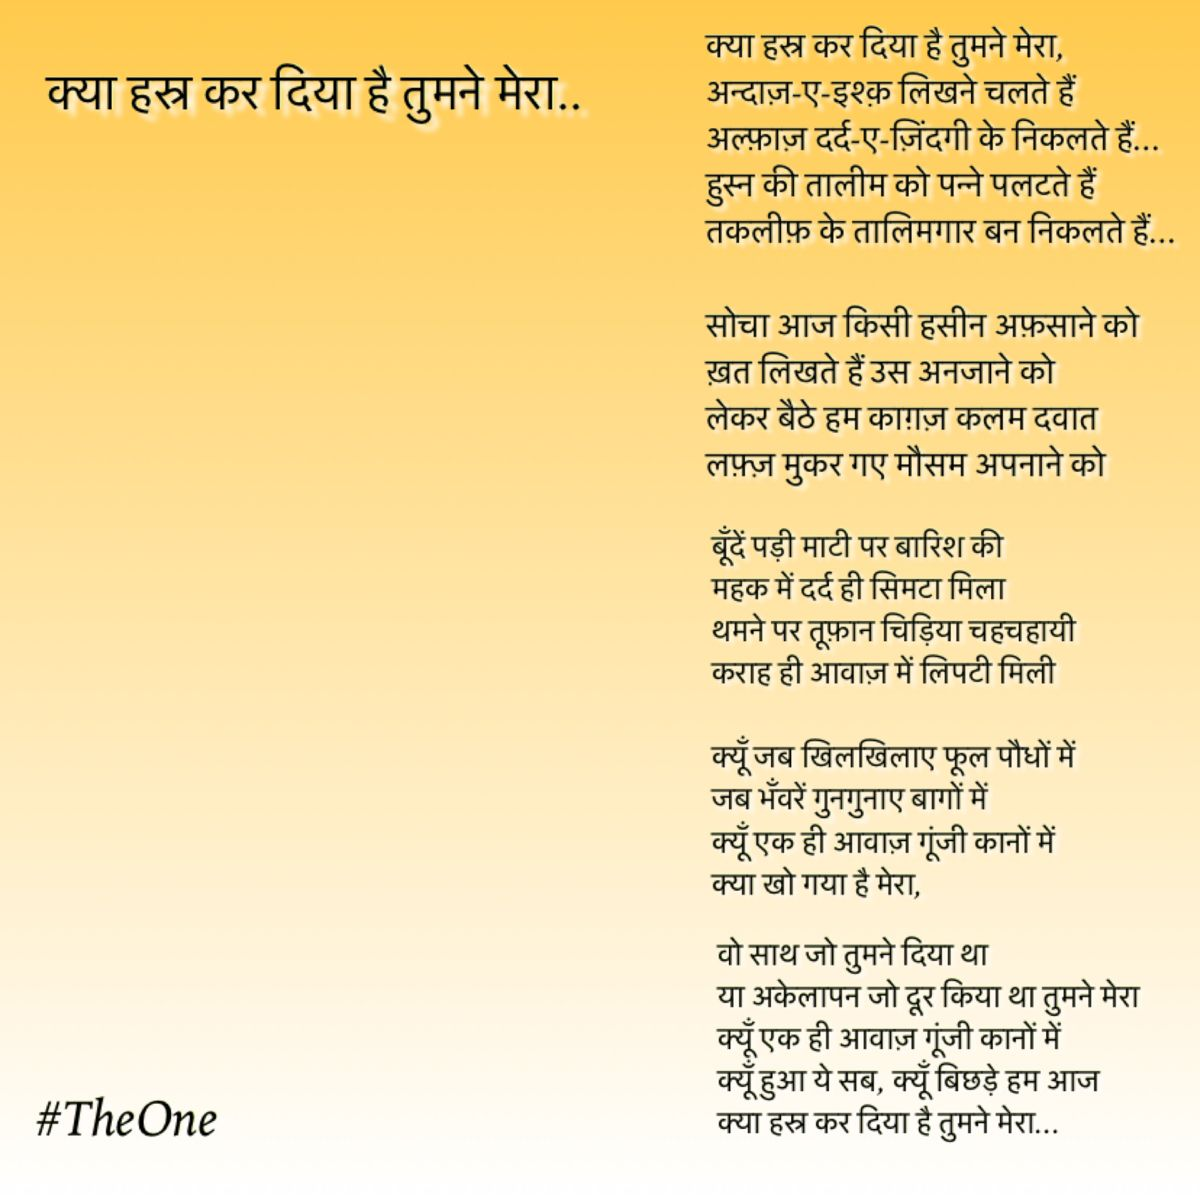 Pin by TheOne on Kuchh Shabd in 2020 Mood Poetry